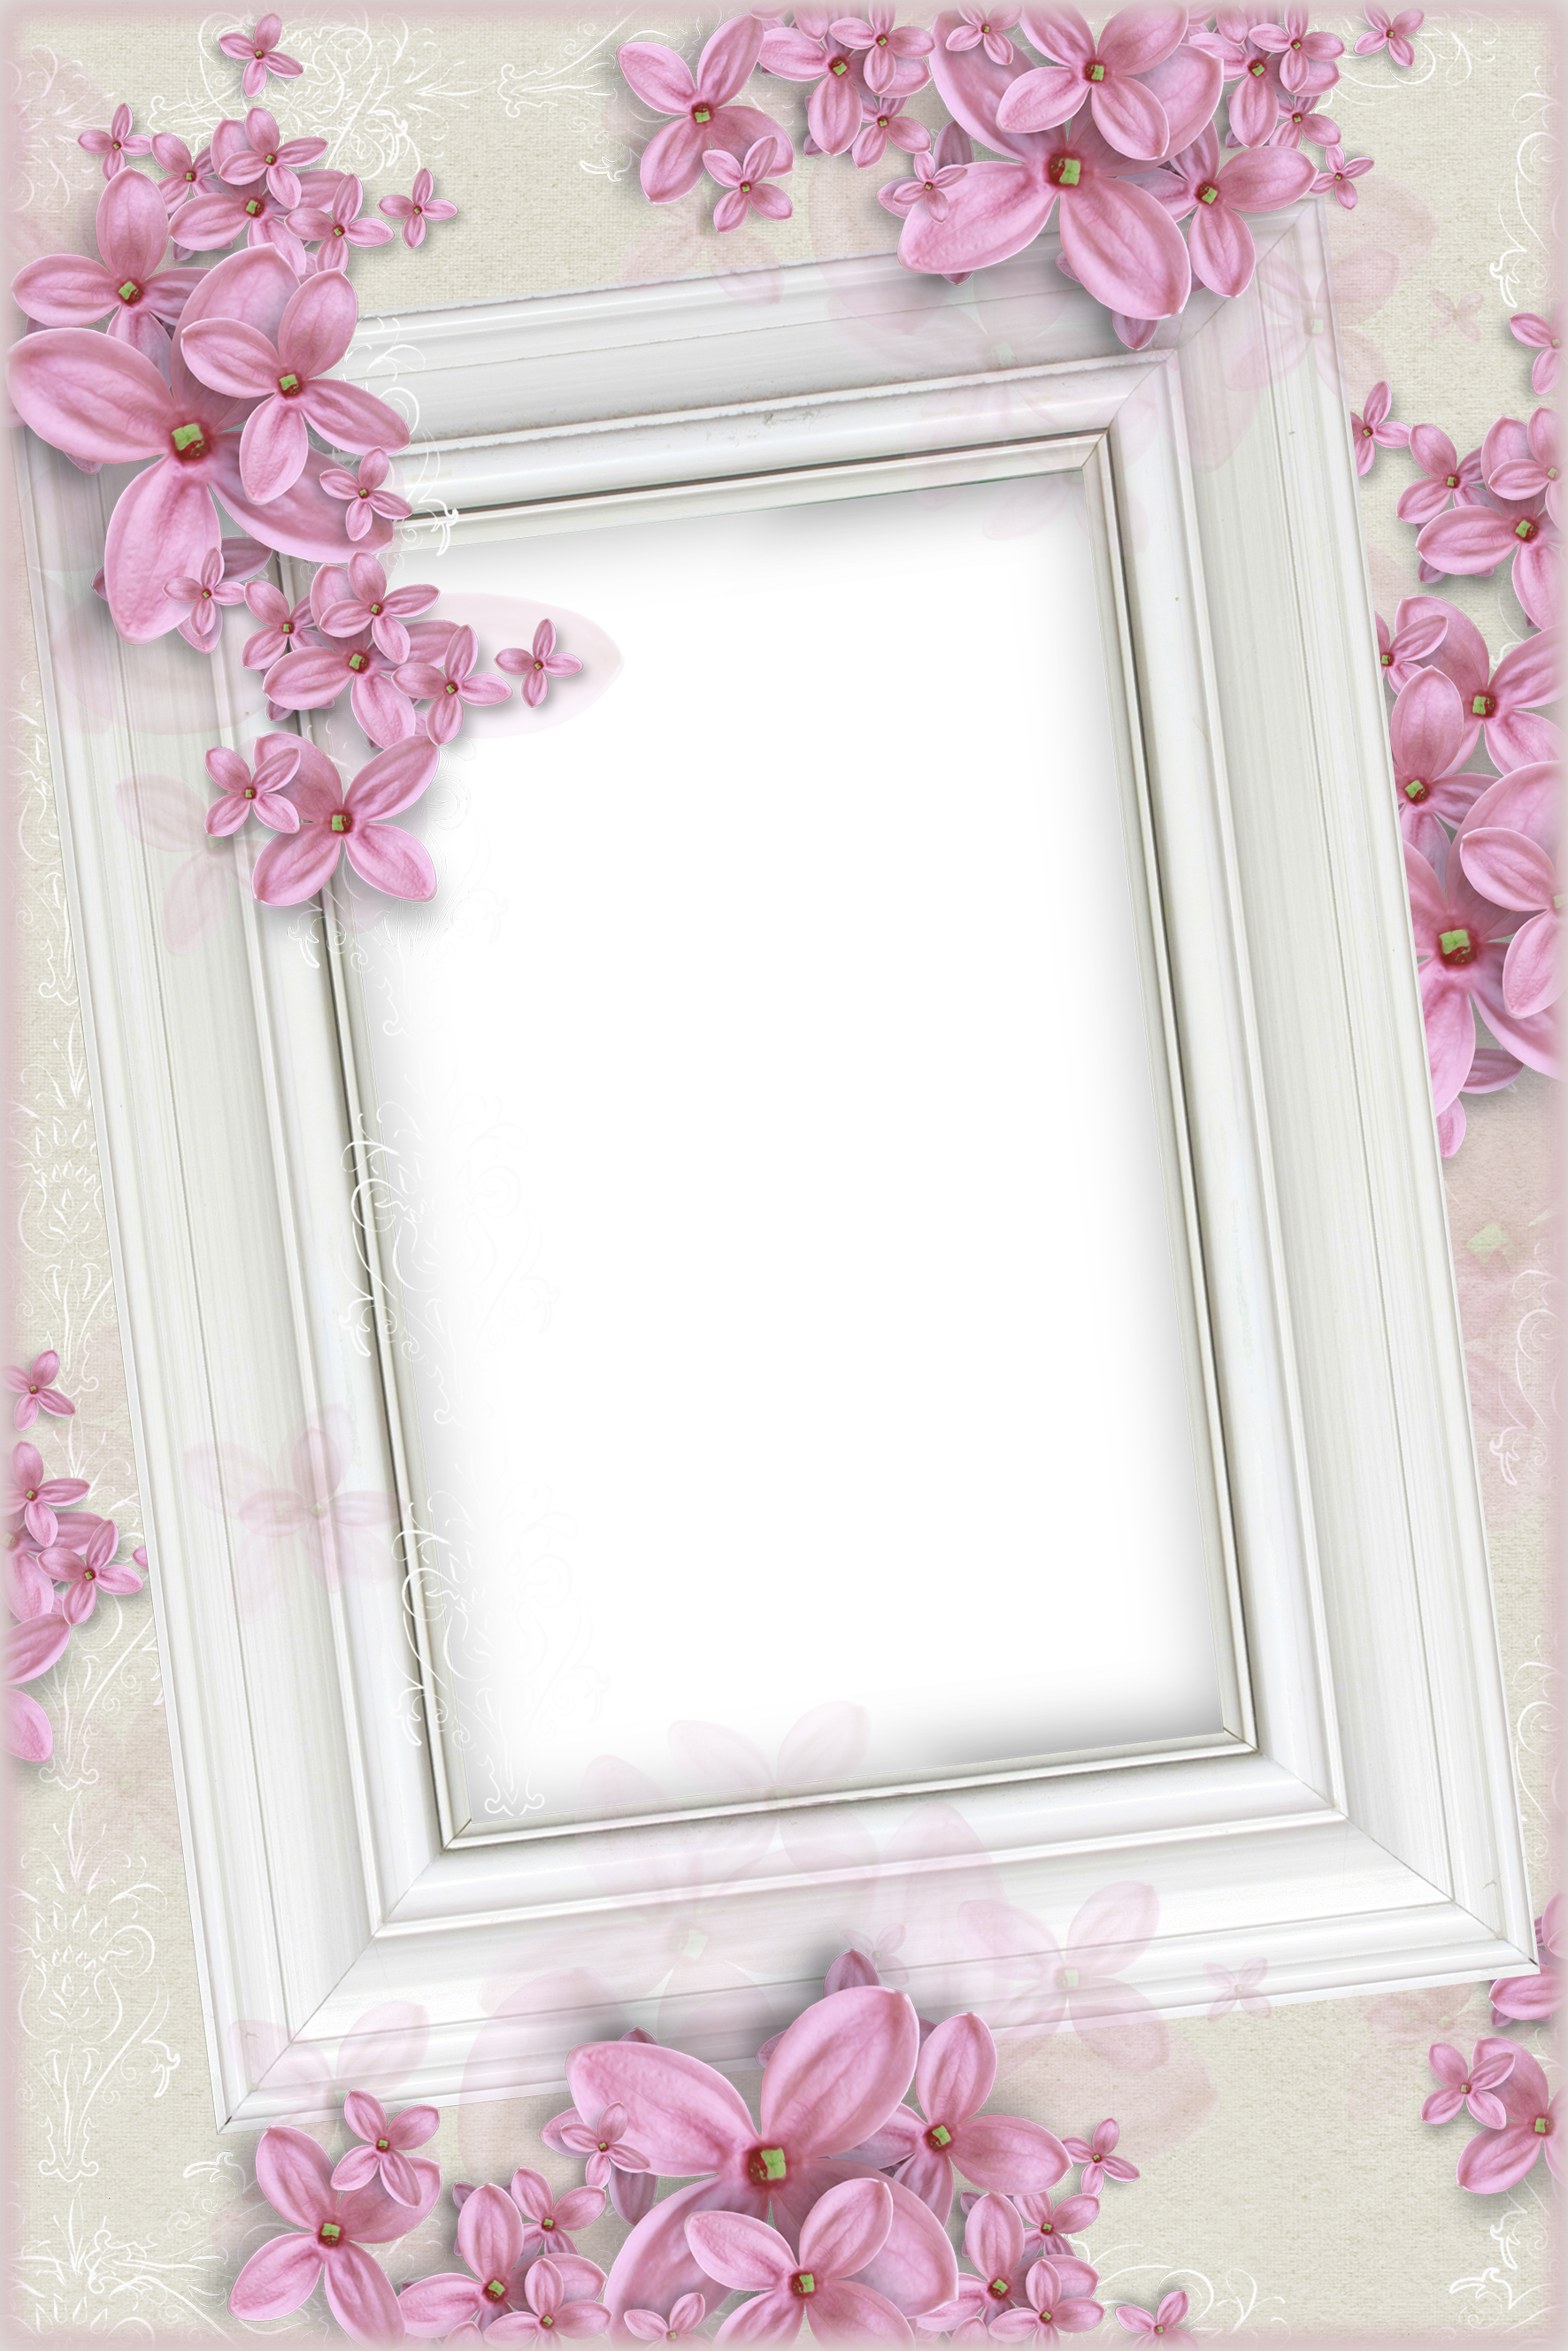 Delicate White Transparent Frame with Pink Flowers